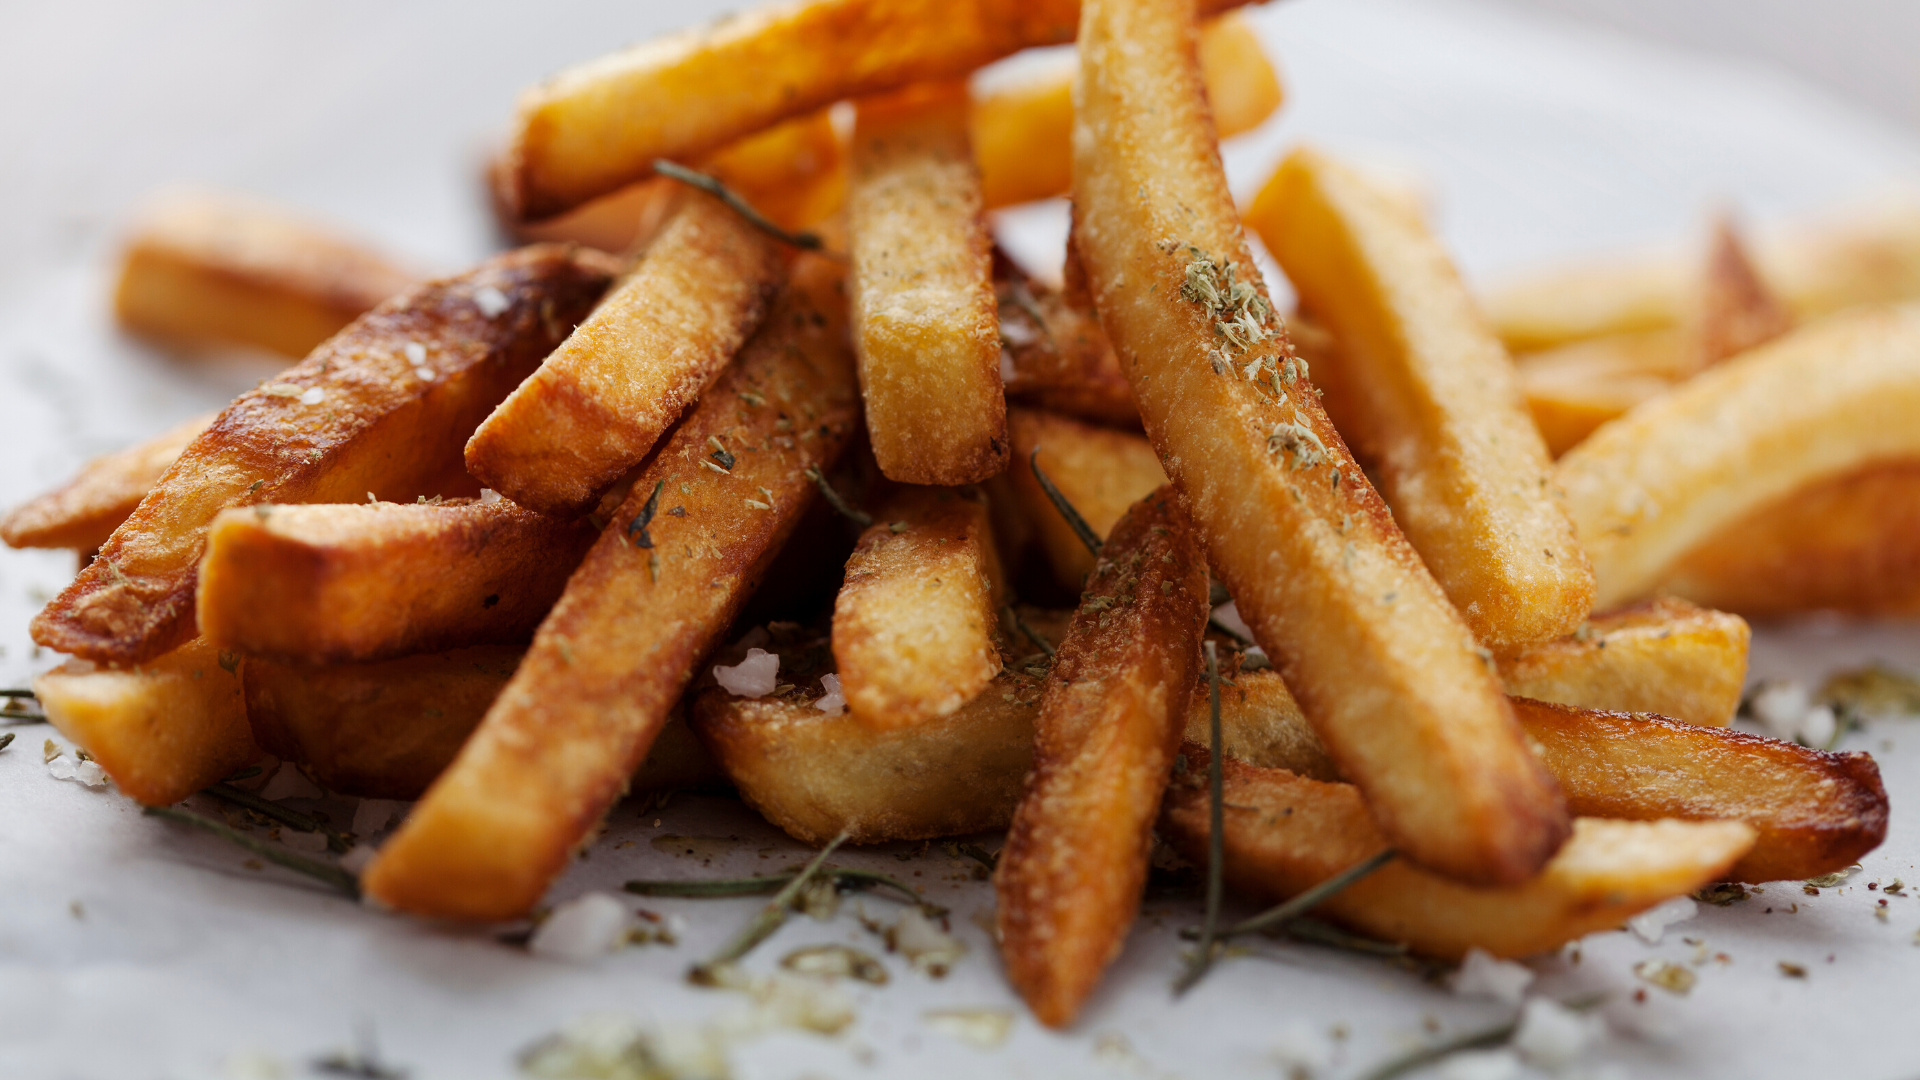 Benefits of Using a Fryer with Less Oil